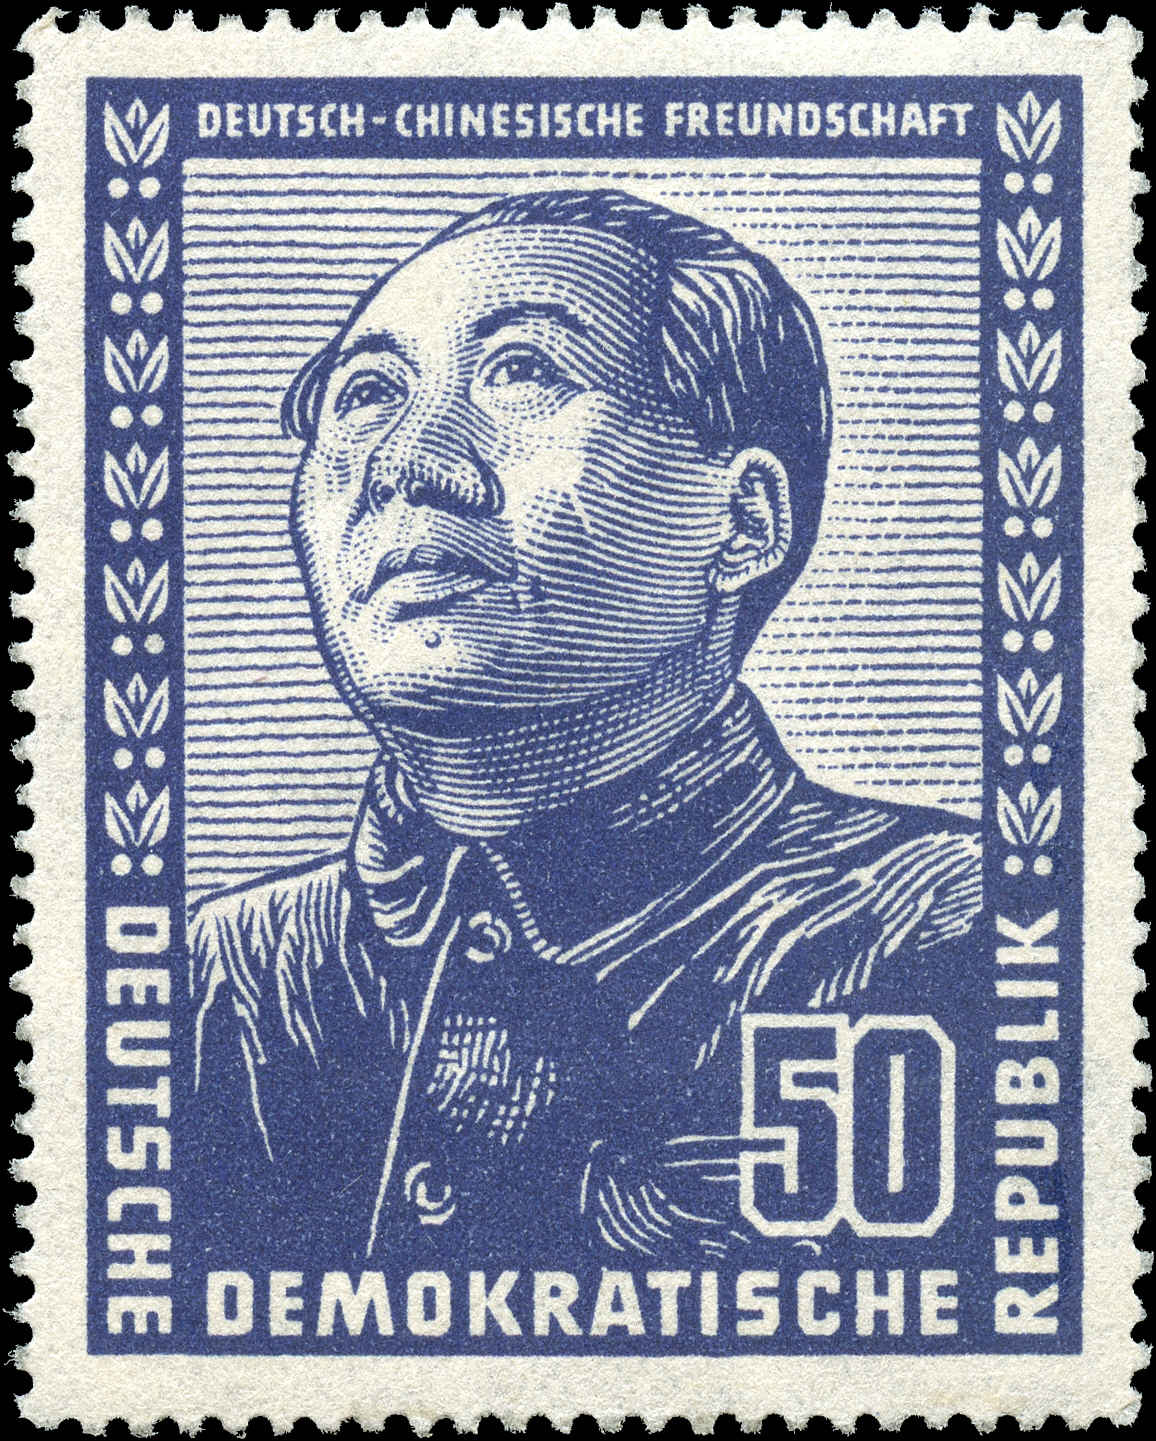 German Dem. Rep., ##84, VF, MNH